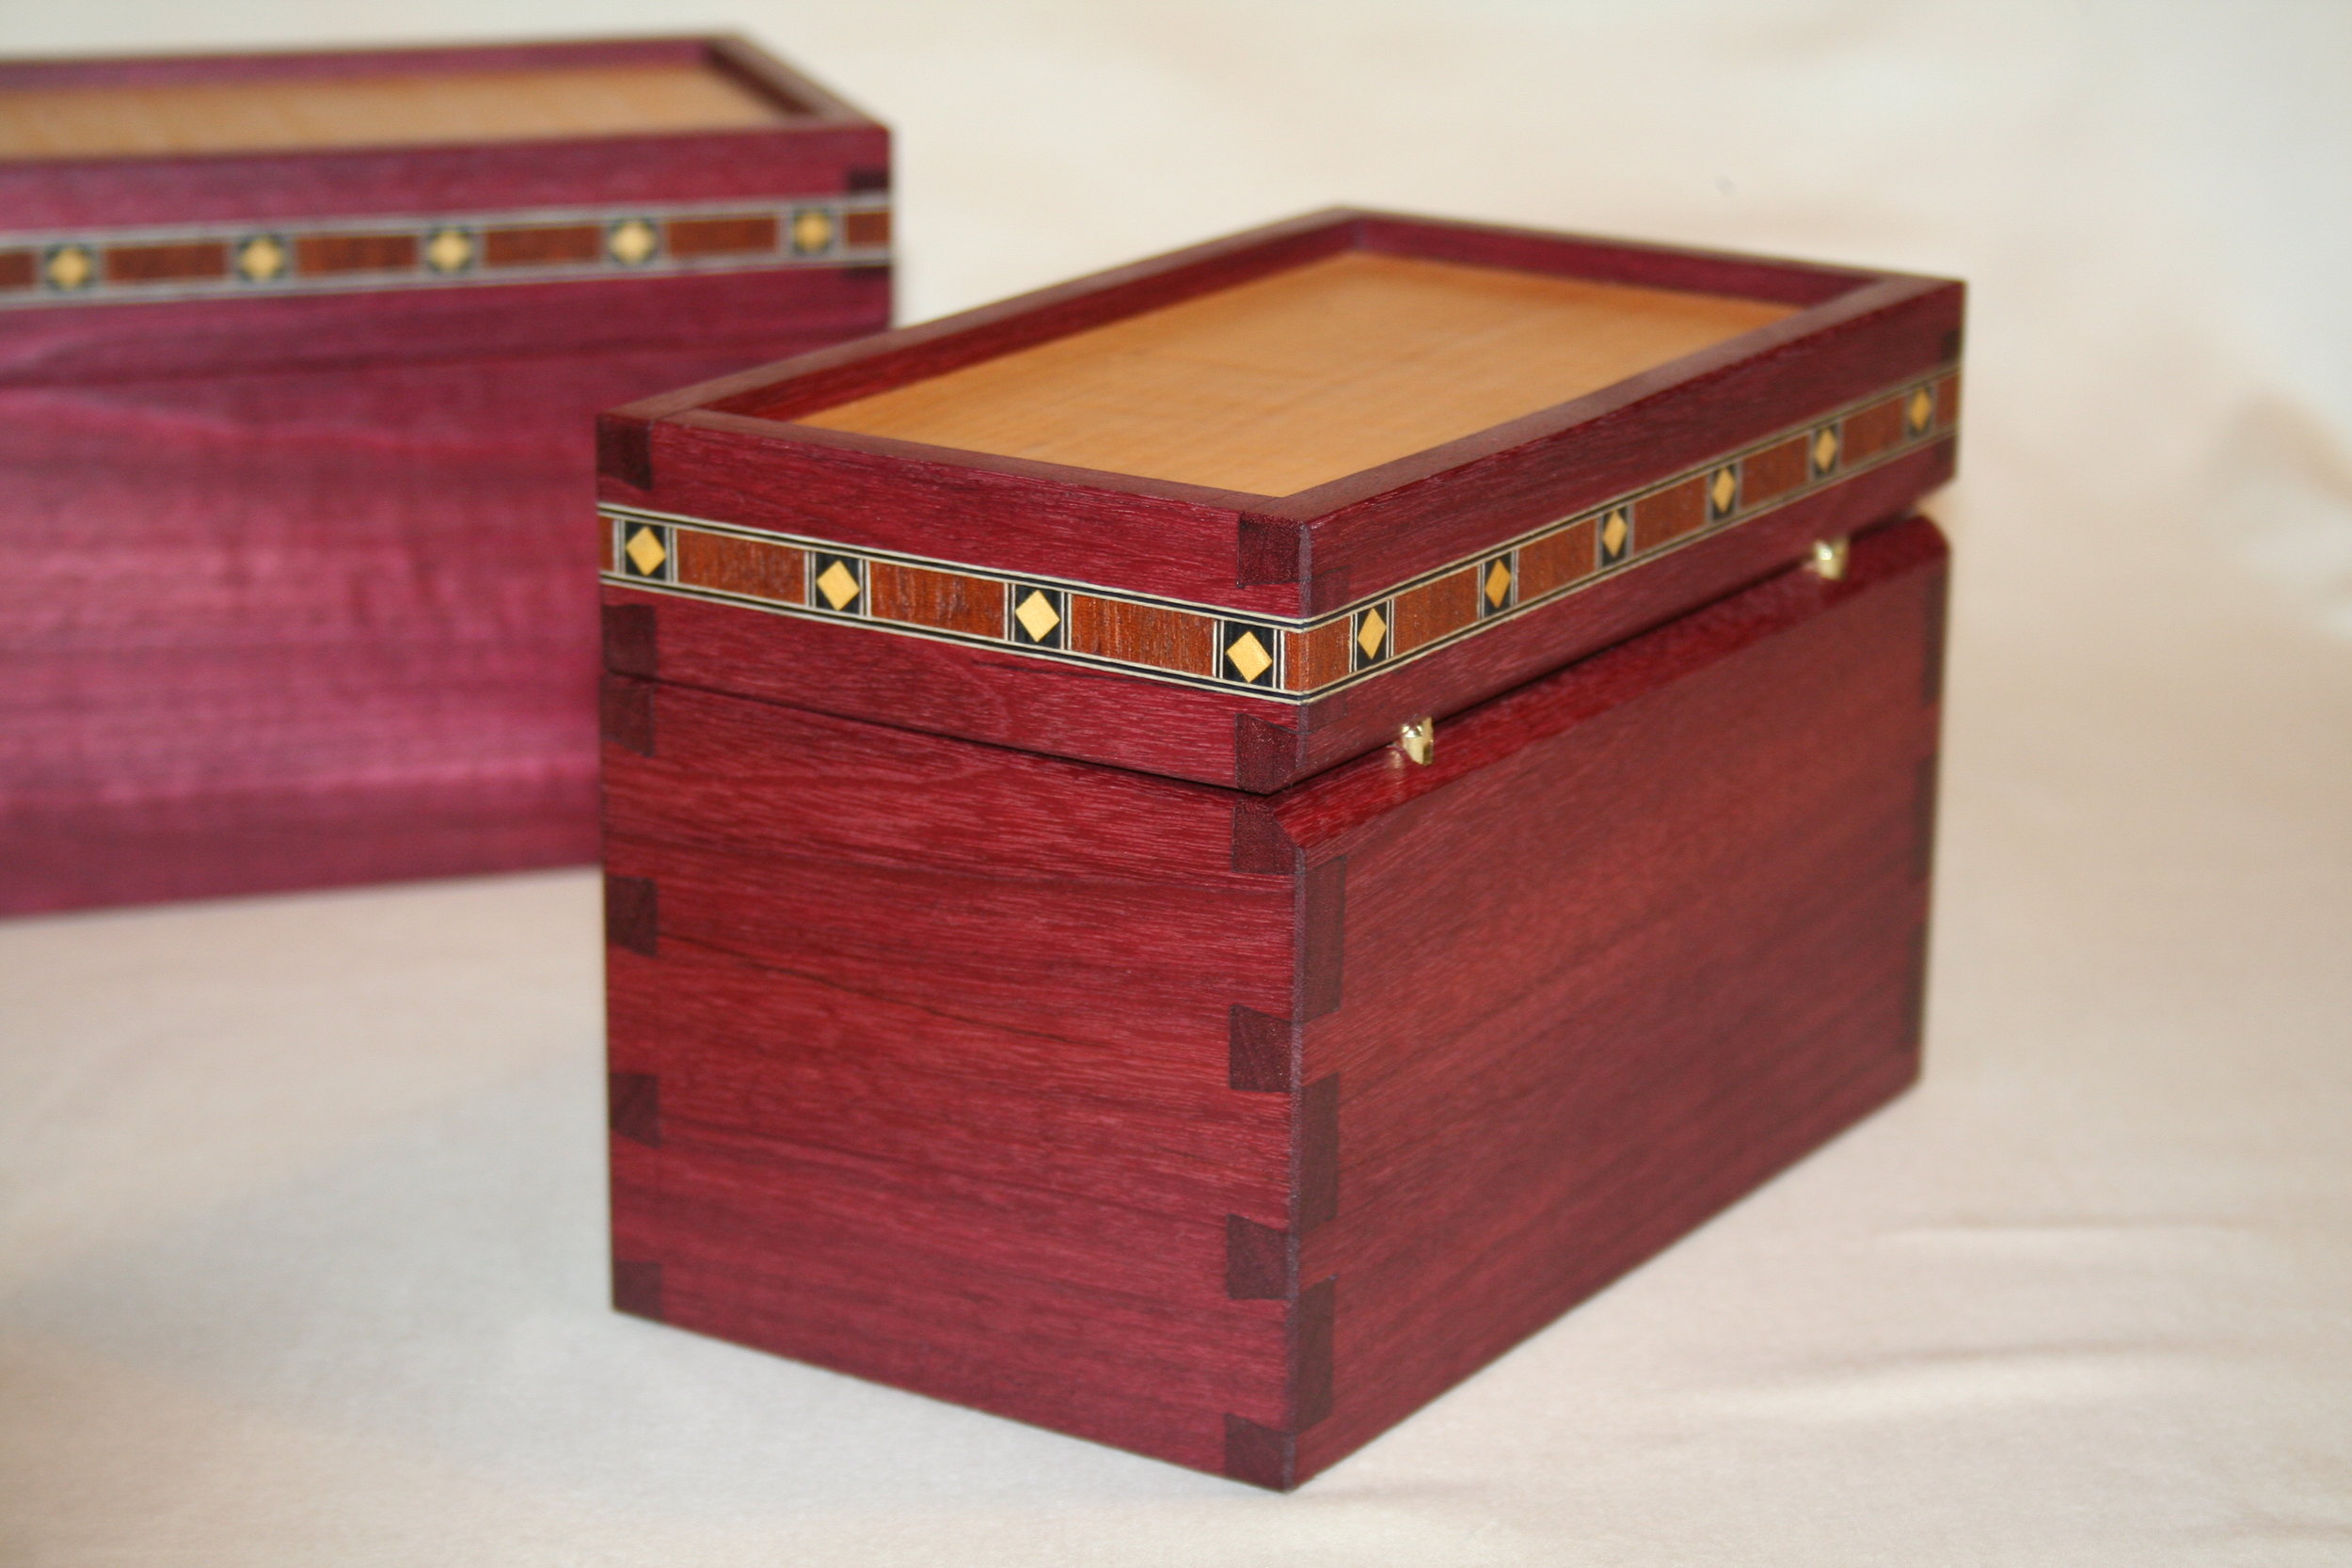 Boxes - Purple Heart and Maple